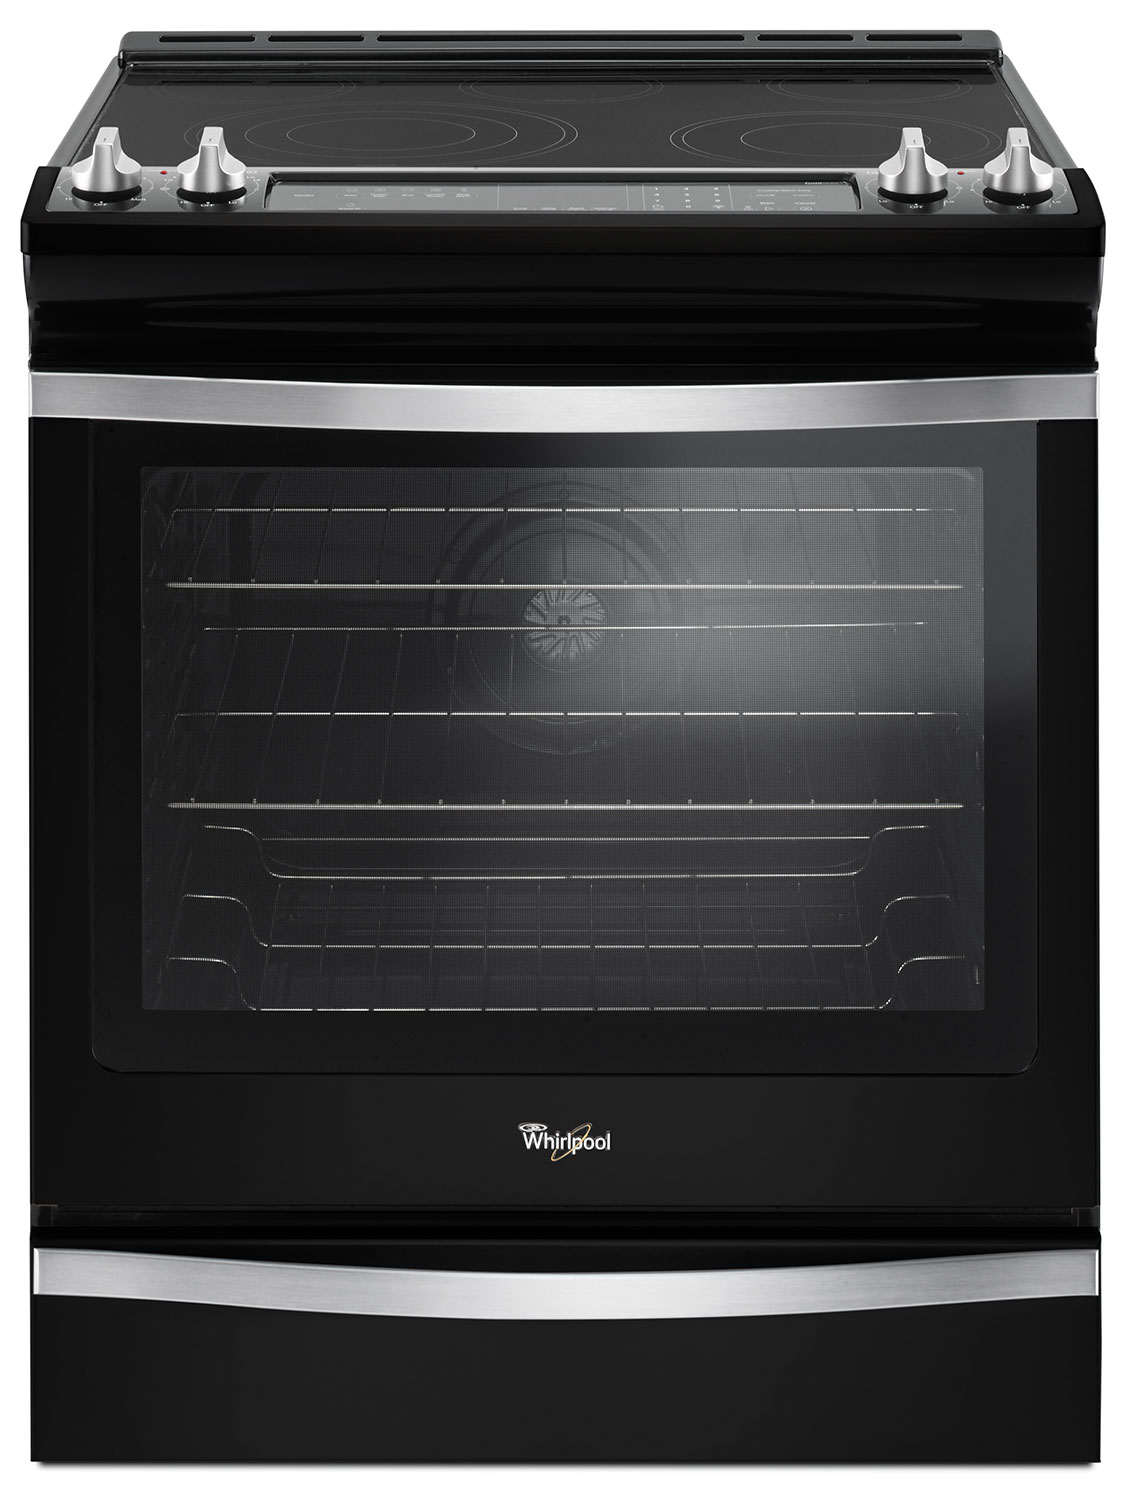 Cooking Products - Whirlpool 6.4 Cu. Ft. Slide-In Electric Range – YWEE745H0FE